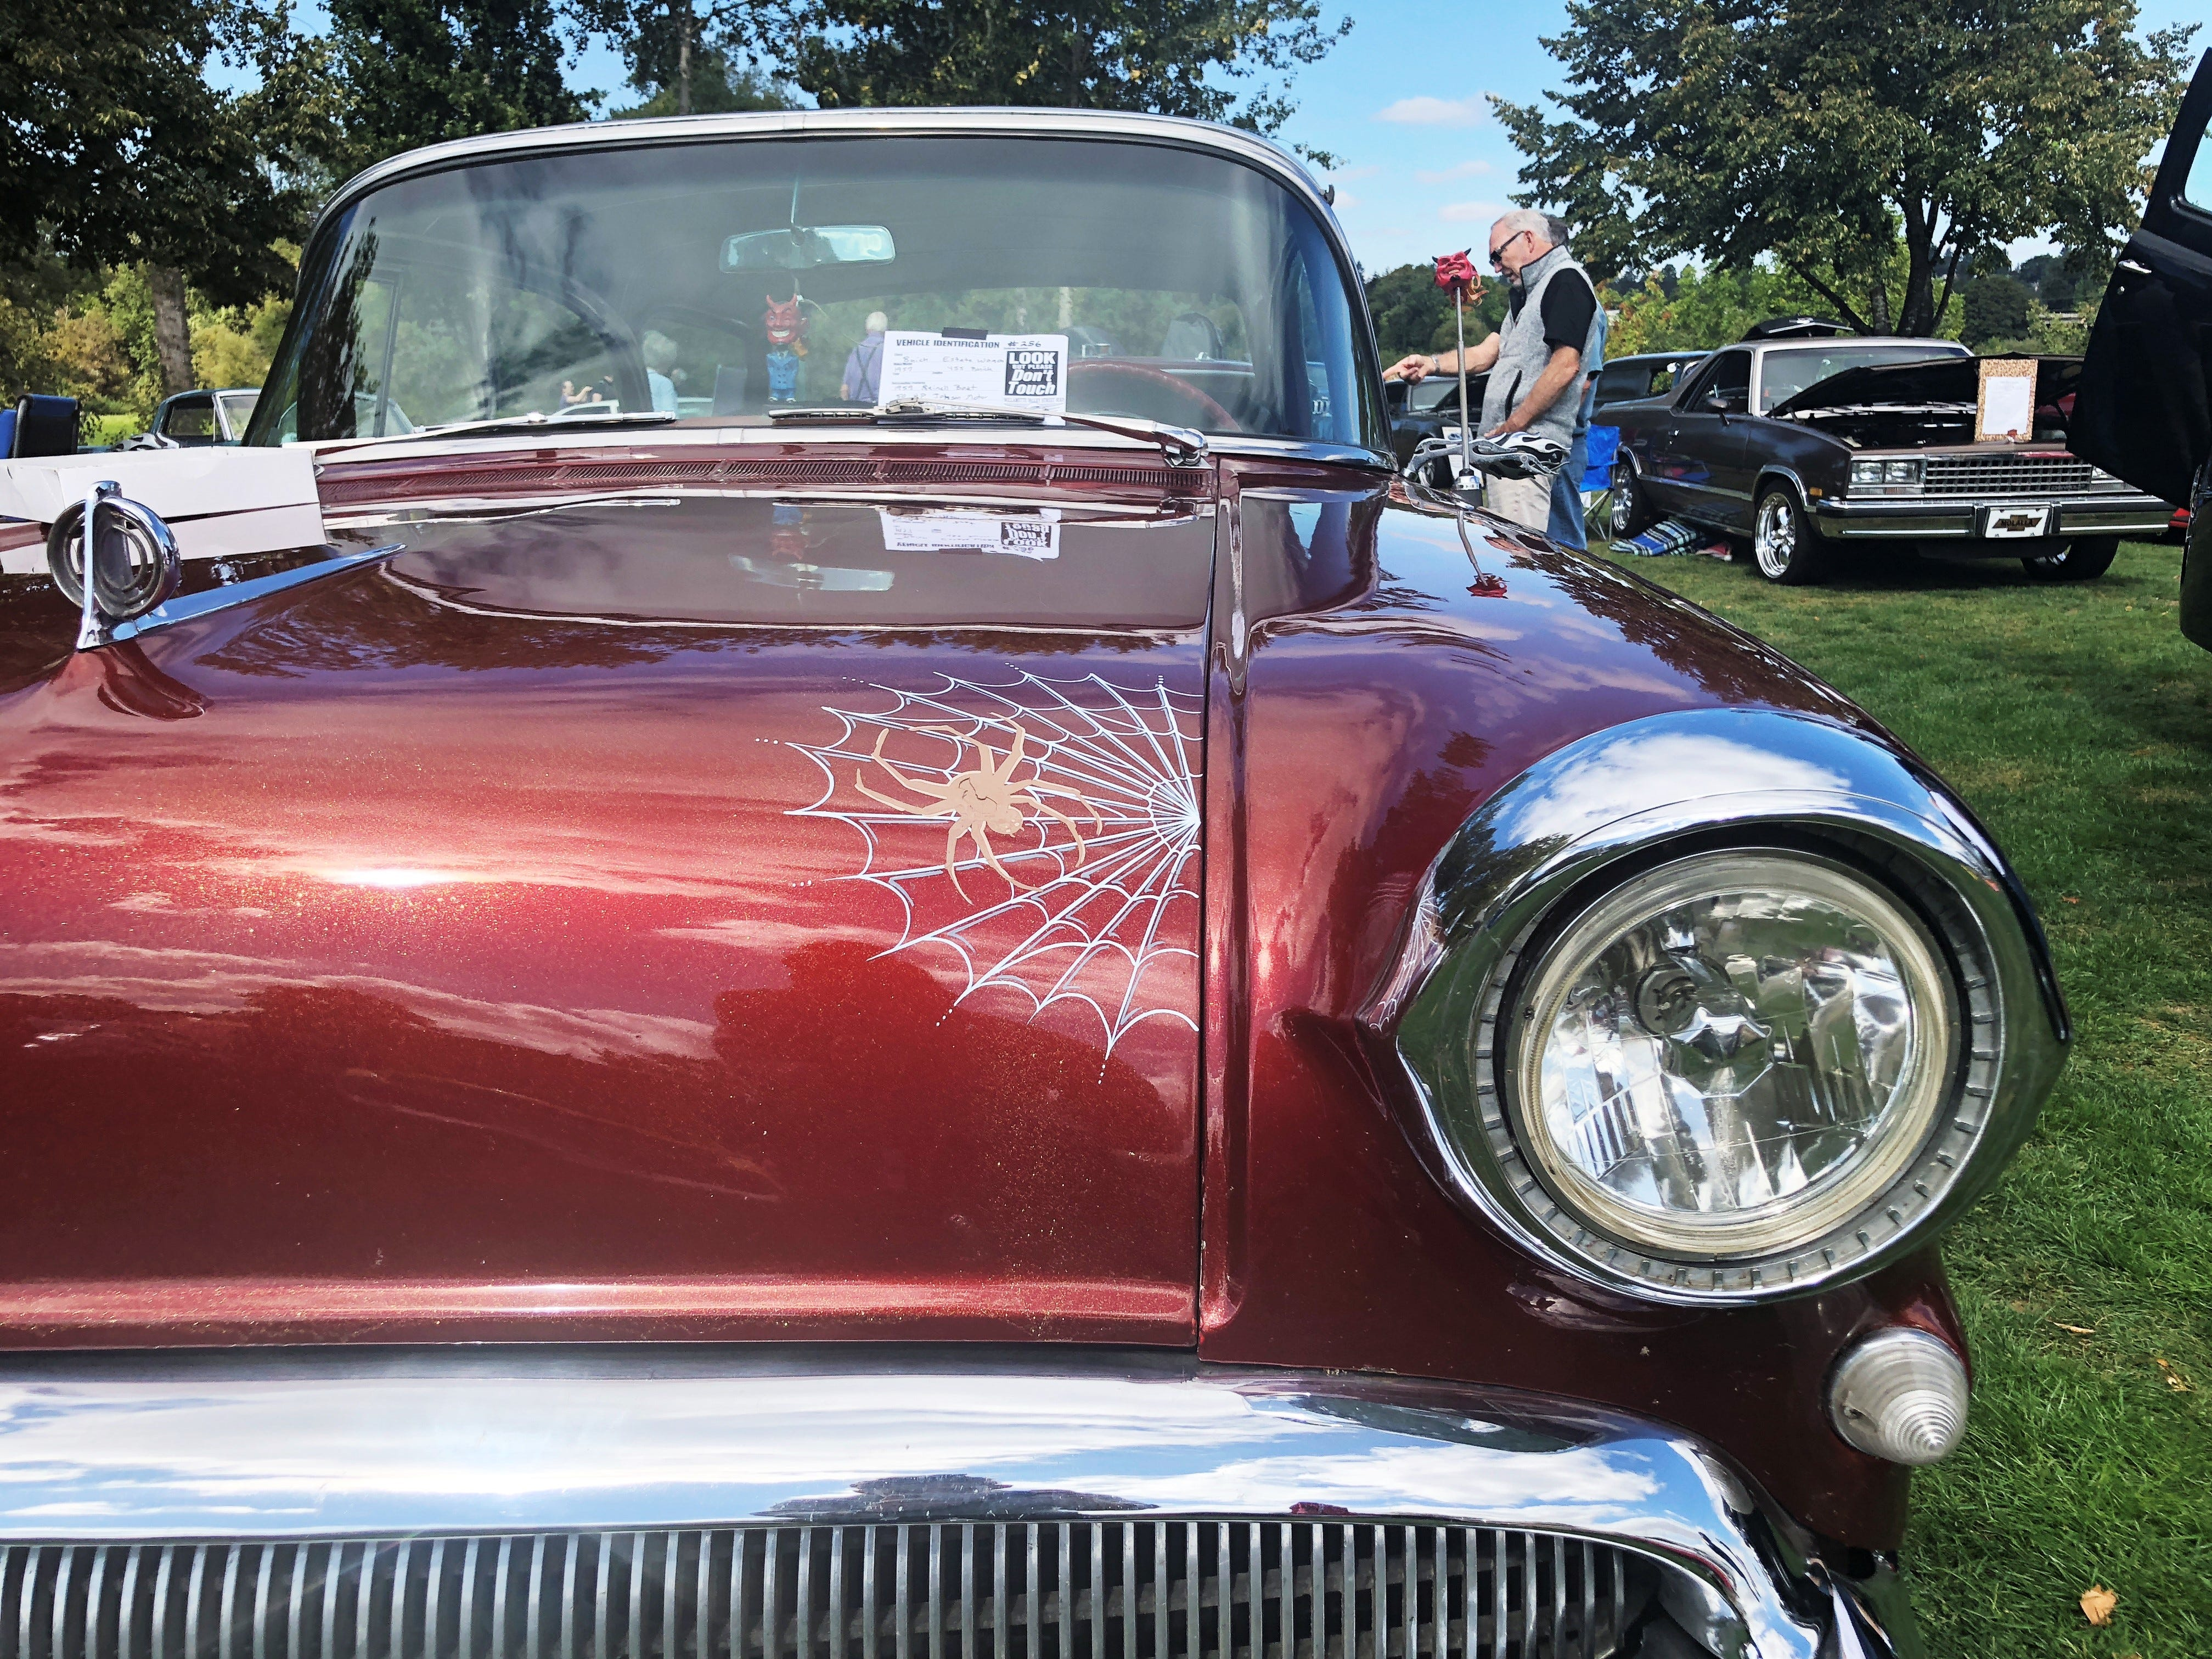 An up close shot of a 1957 Buick Estate Wagon at the 27th Annual Carousel Cruise at Riverfront Park in Salem on Saturday, Sept. 1.